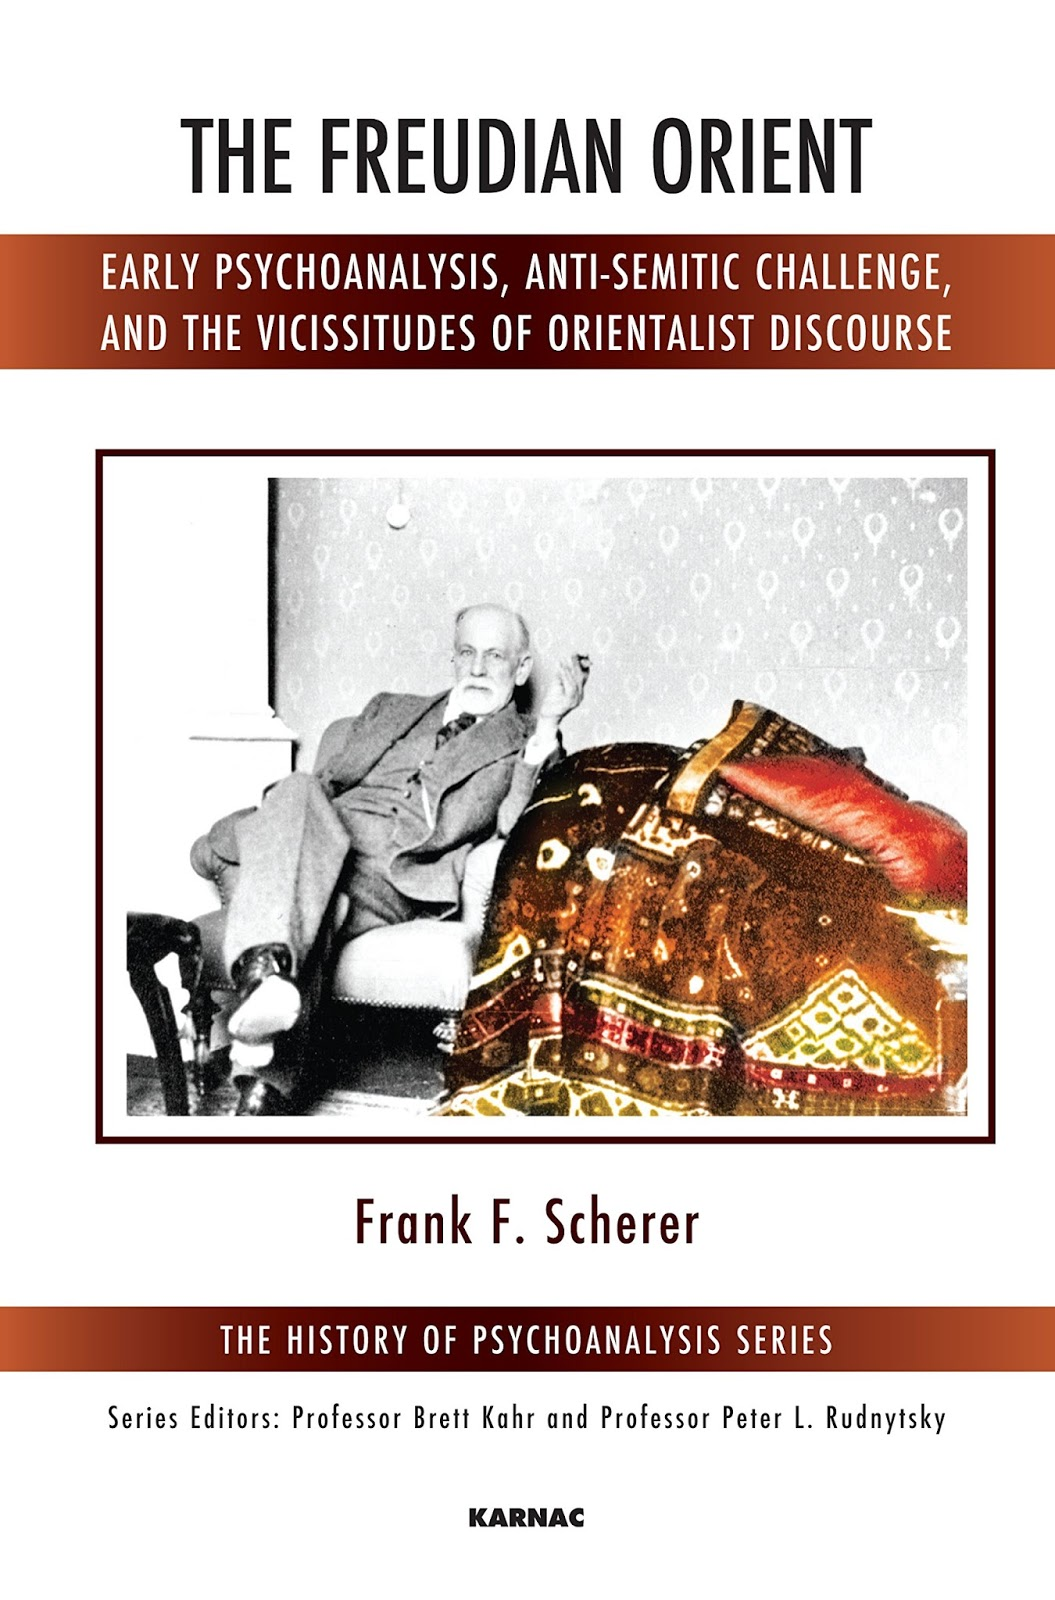 subjectivity in psychoanalytical discourse The discourse studies reader: [not in series 184] 2014 pp 83 - 83 louis althusser: the subjectivity effect of discourse references london: verso althusser, louis 1996 writings on psychoanalysis: freud and lacan new york: columbia university press althusser, louis, and etienne.